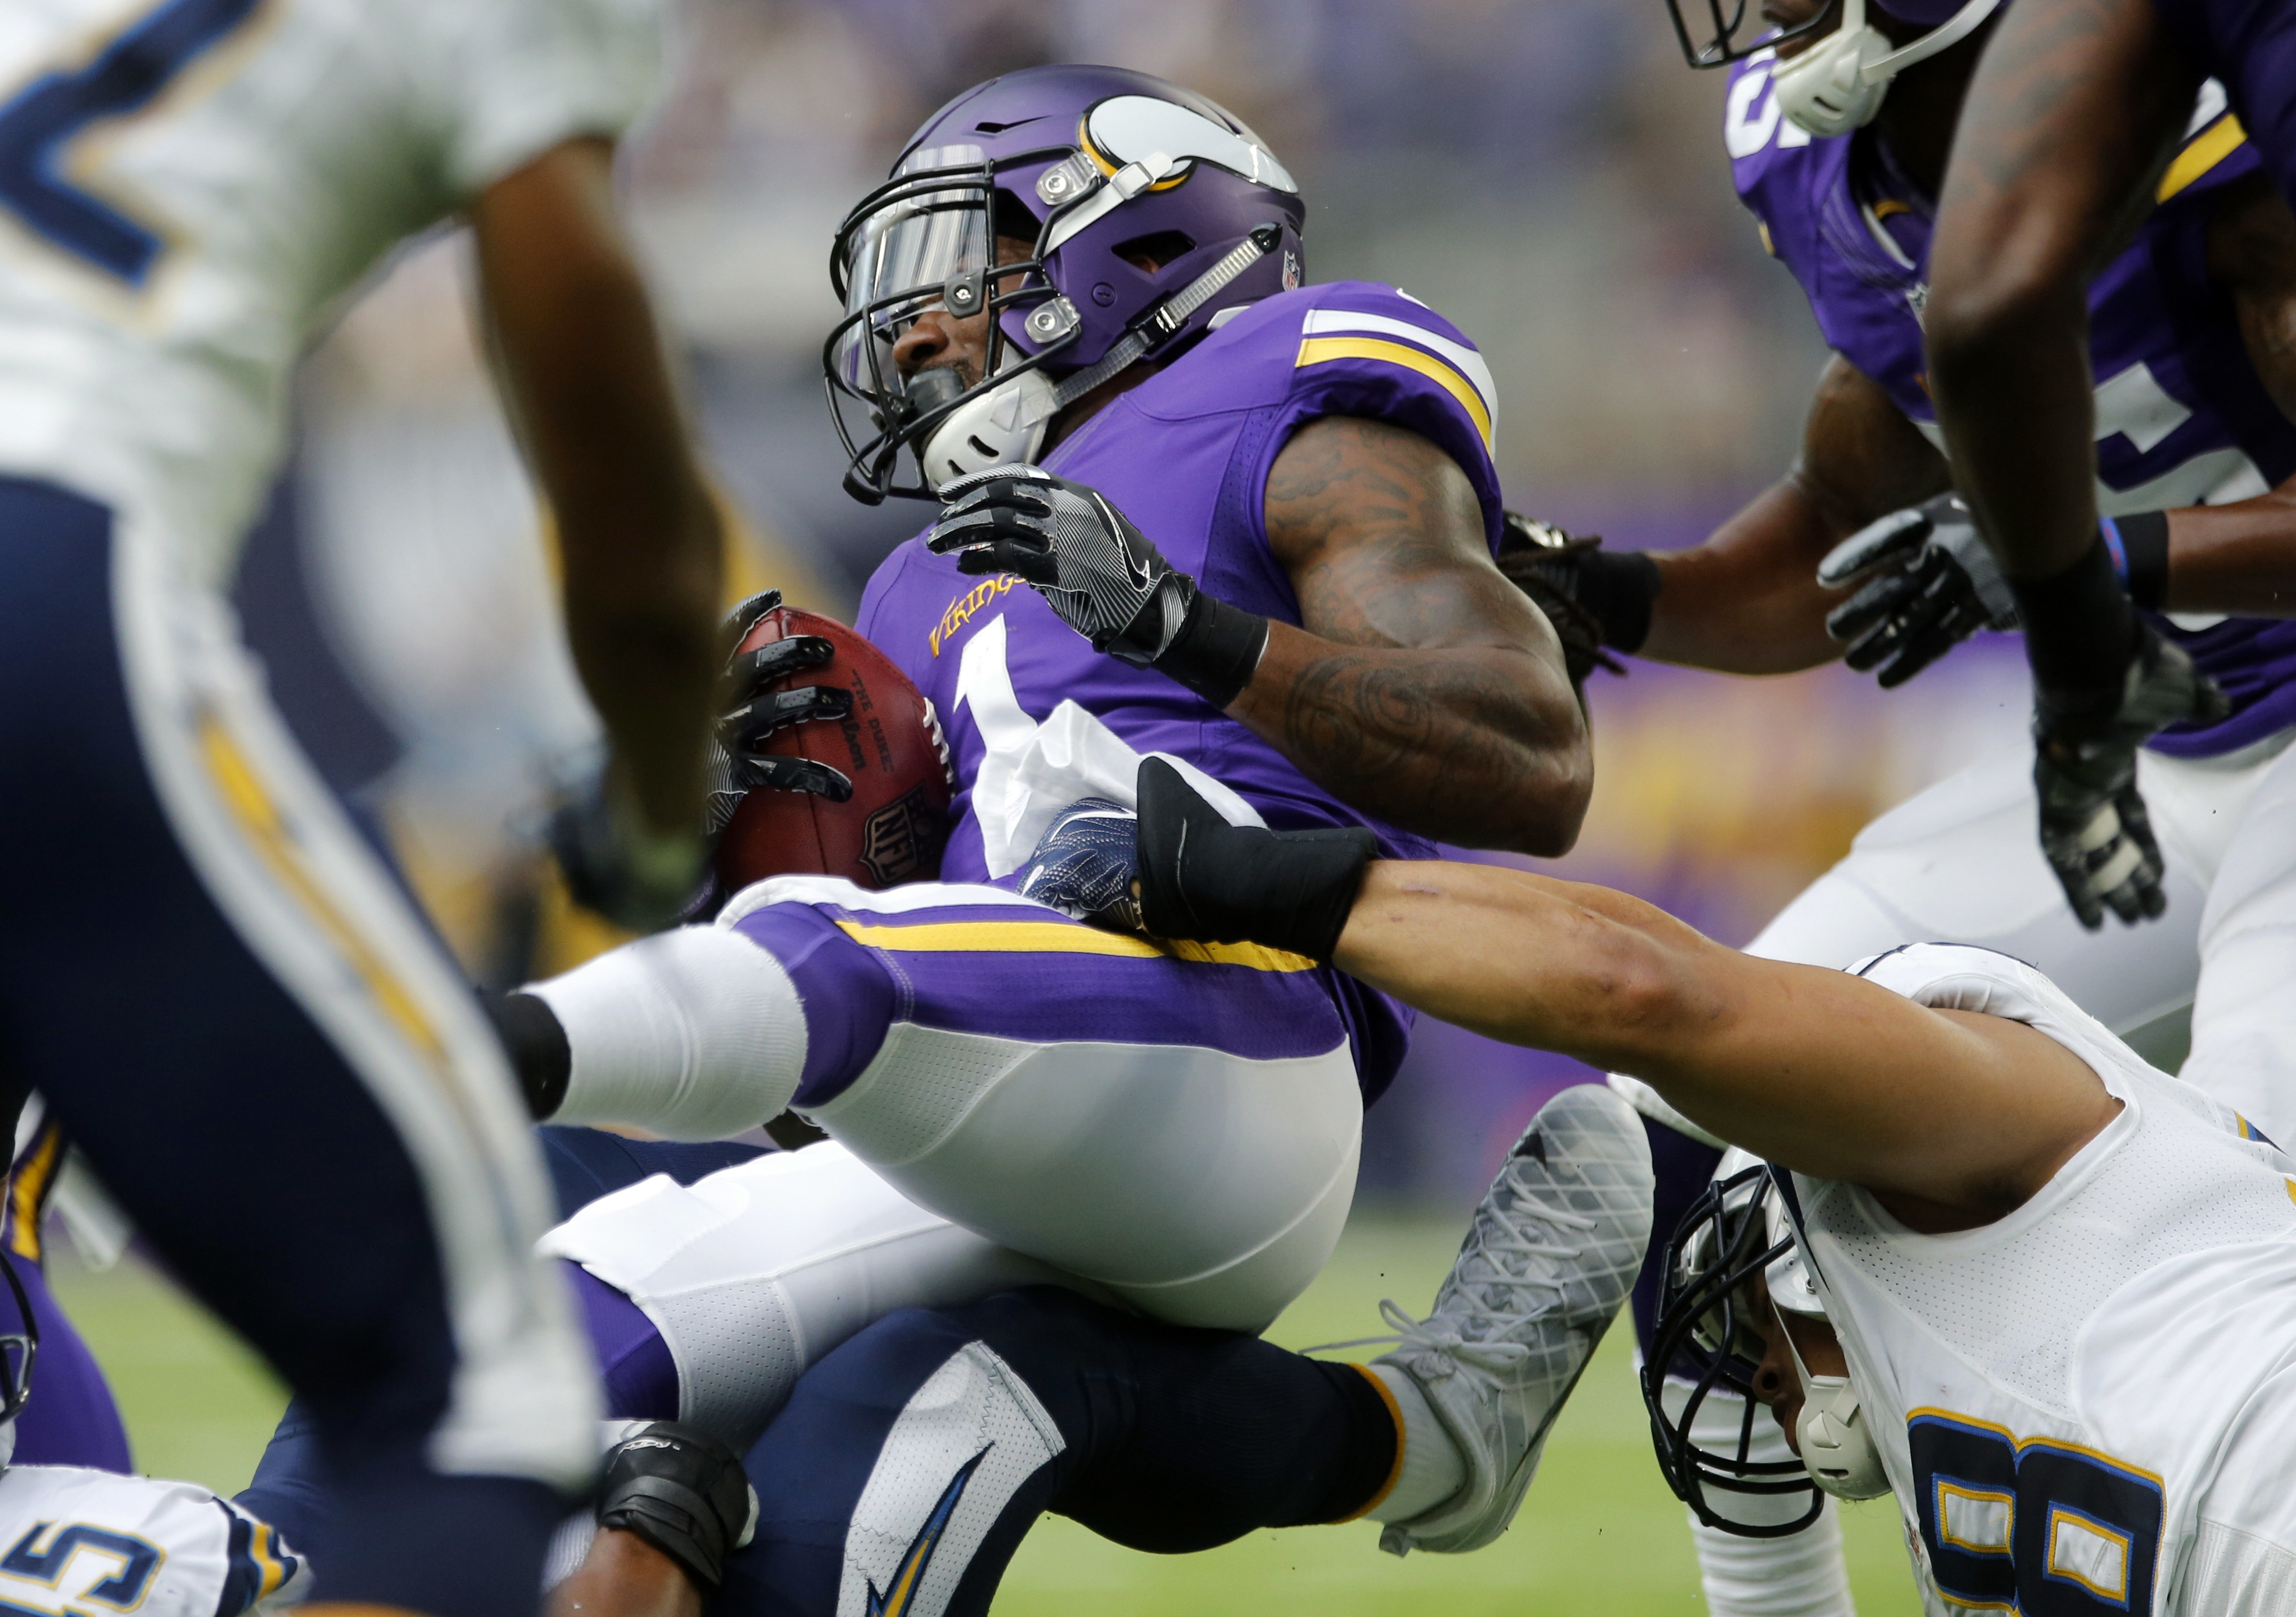 Minnesota Vikings wide receiver Troy Stoudermire (1) is tackled by San Diego Chargers outside linebacker Tourek Williams, lower right, during the second half of an NFL preseason football game Sunday, Aug. 28, 2016, in Minneapolis. (AP Photo/Jim Mone)